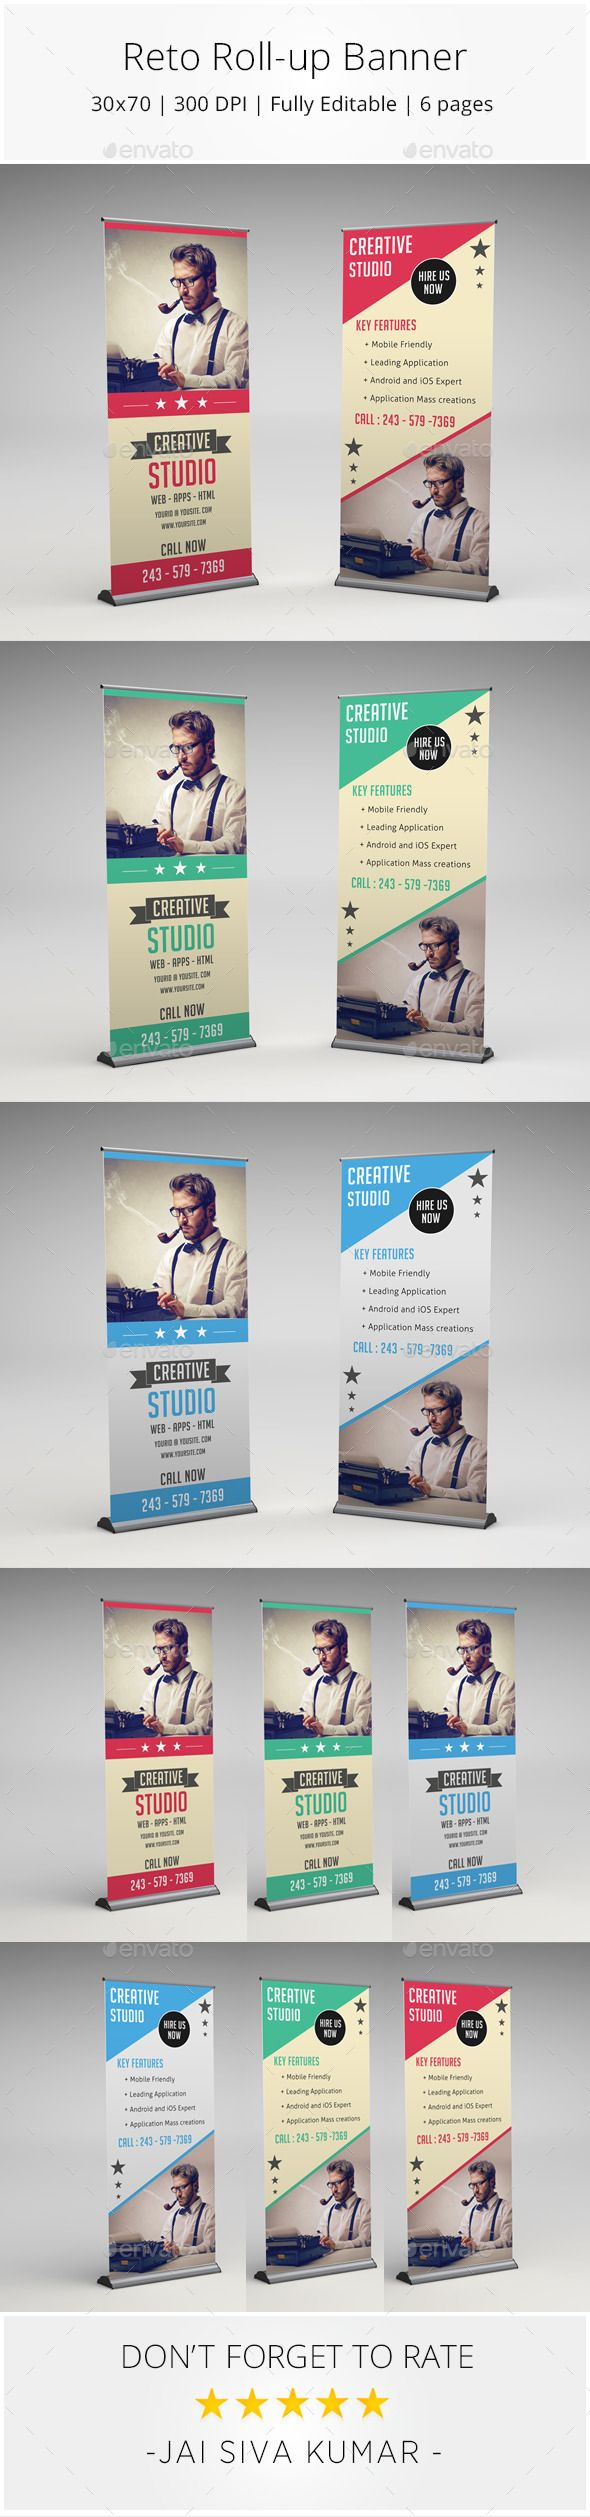 Retro Rollup Banner Template #design Download: http://graphicriver.net/item/retro-rollup-banner/10393914?ref=ksioks